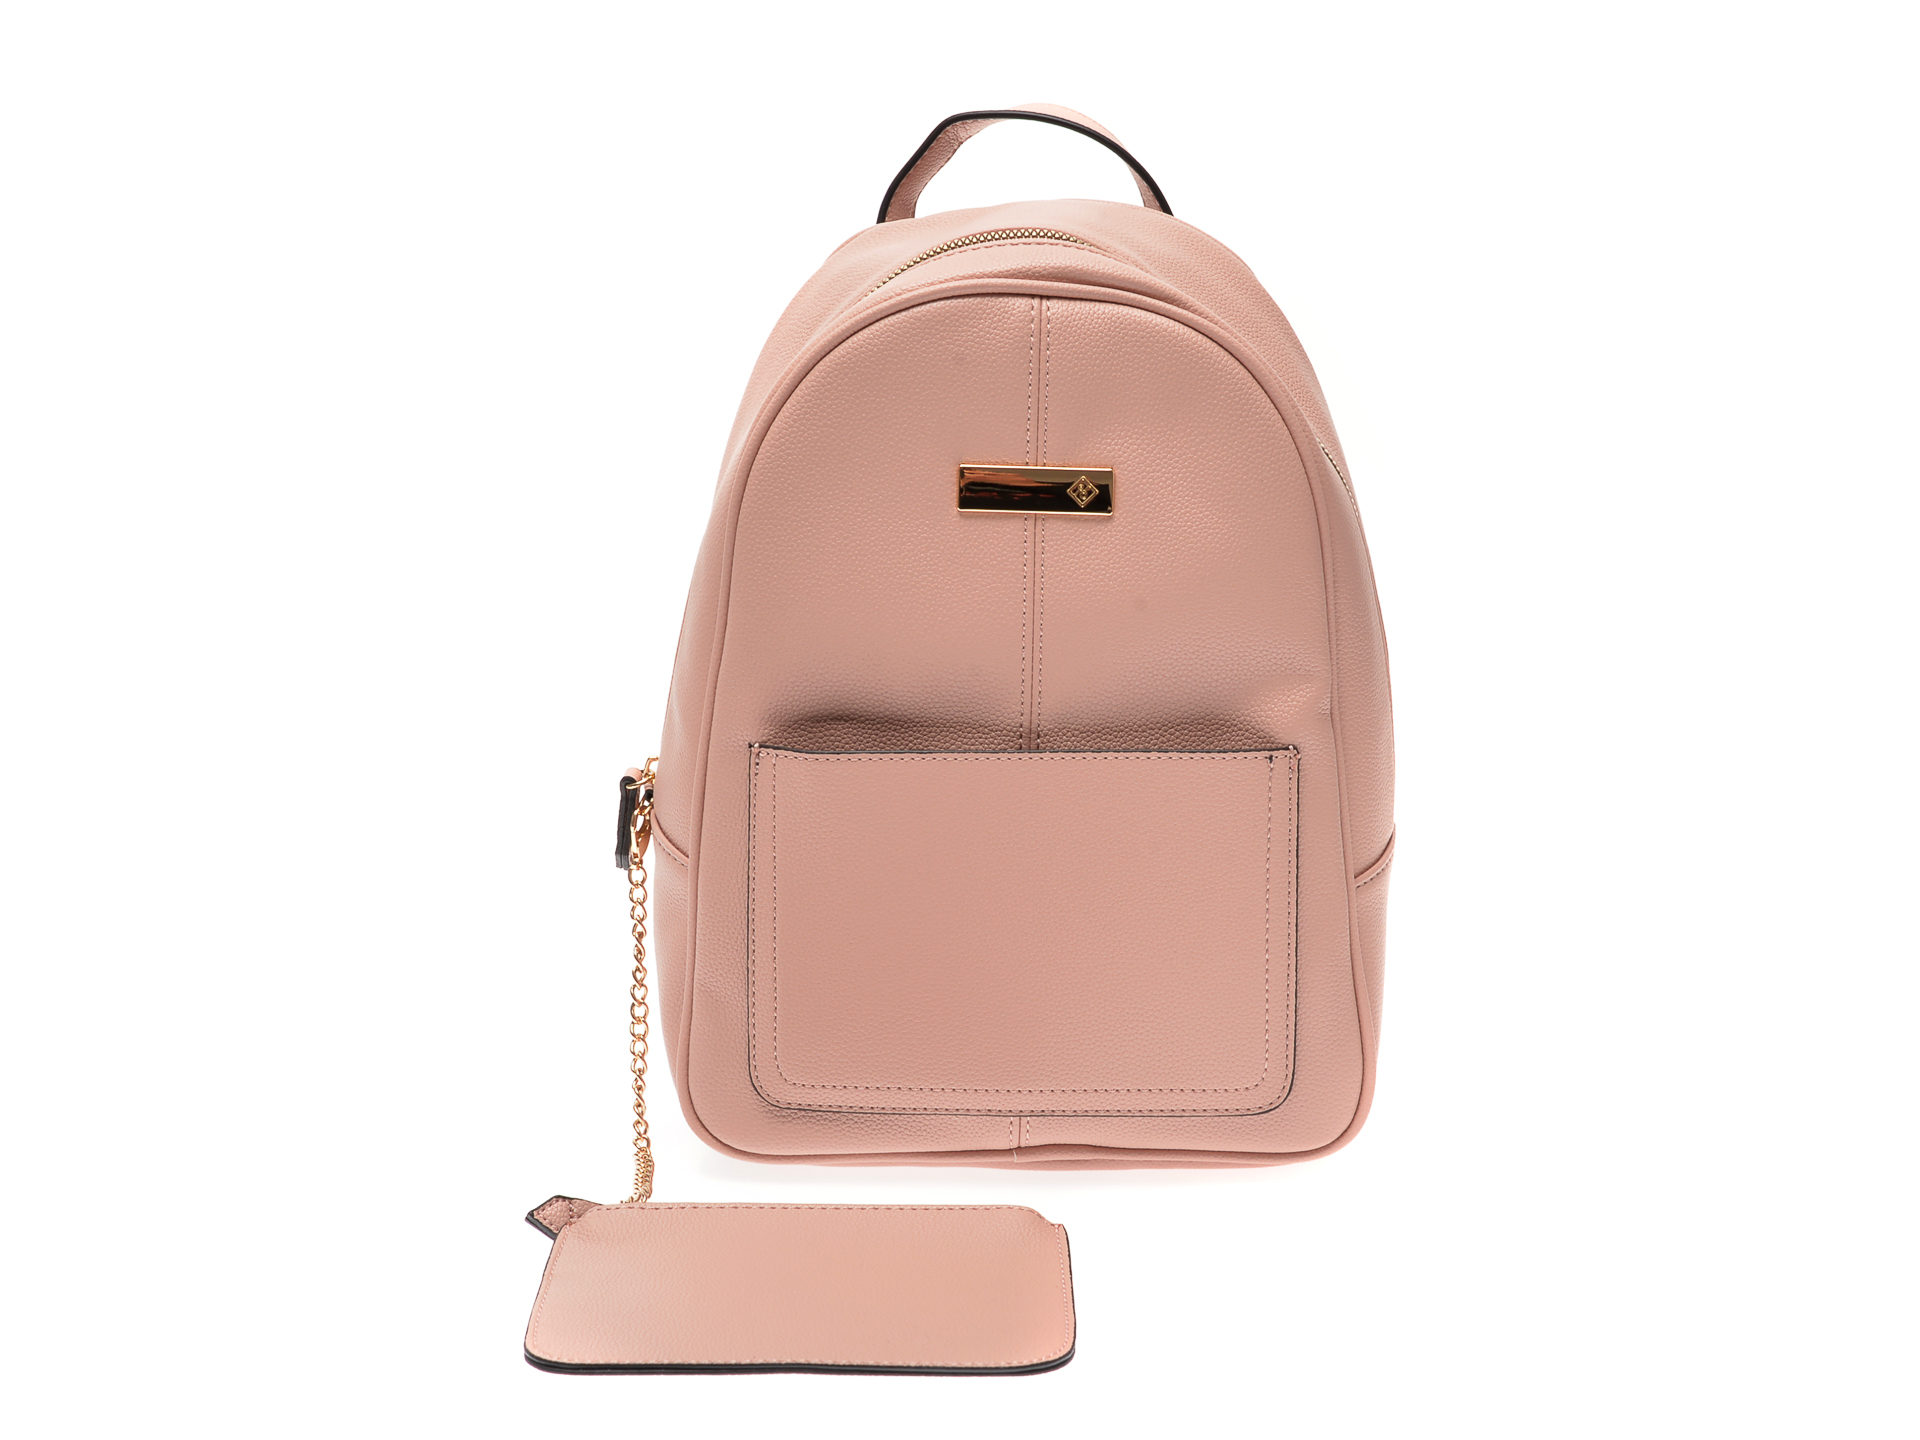 Rucsac CALL IT SPRING nude, GOAL680, din material textil imagine